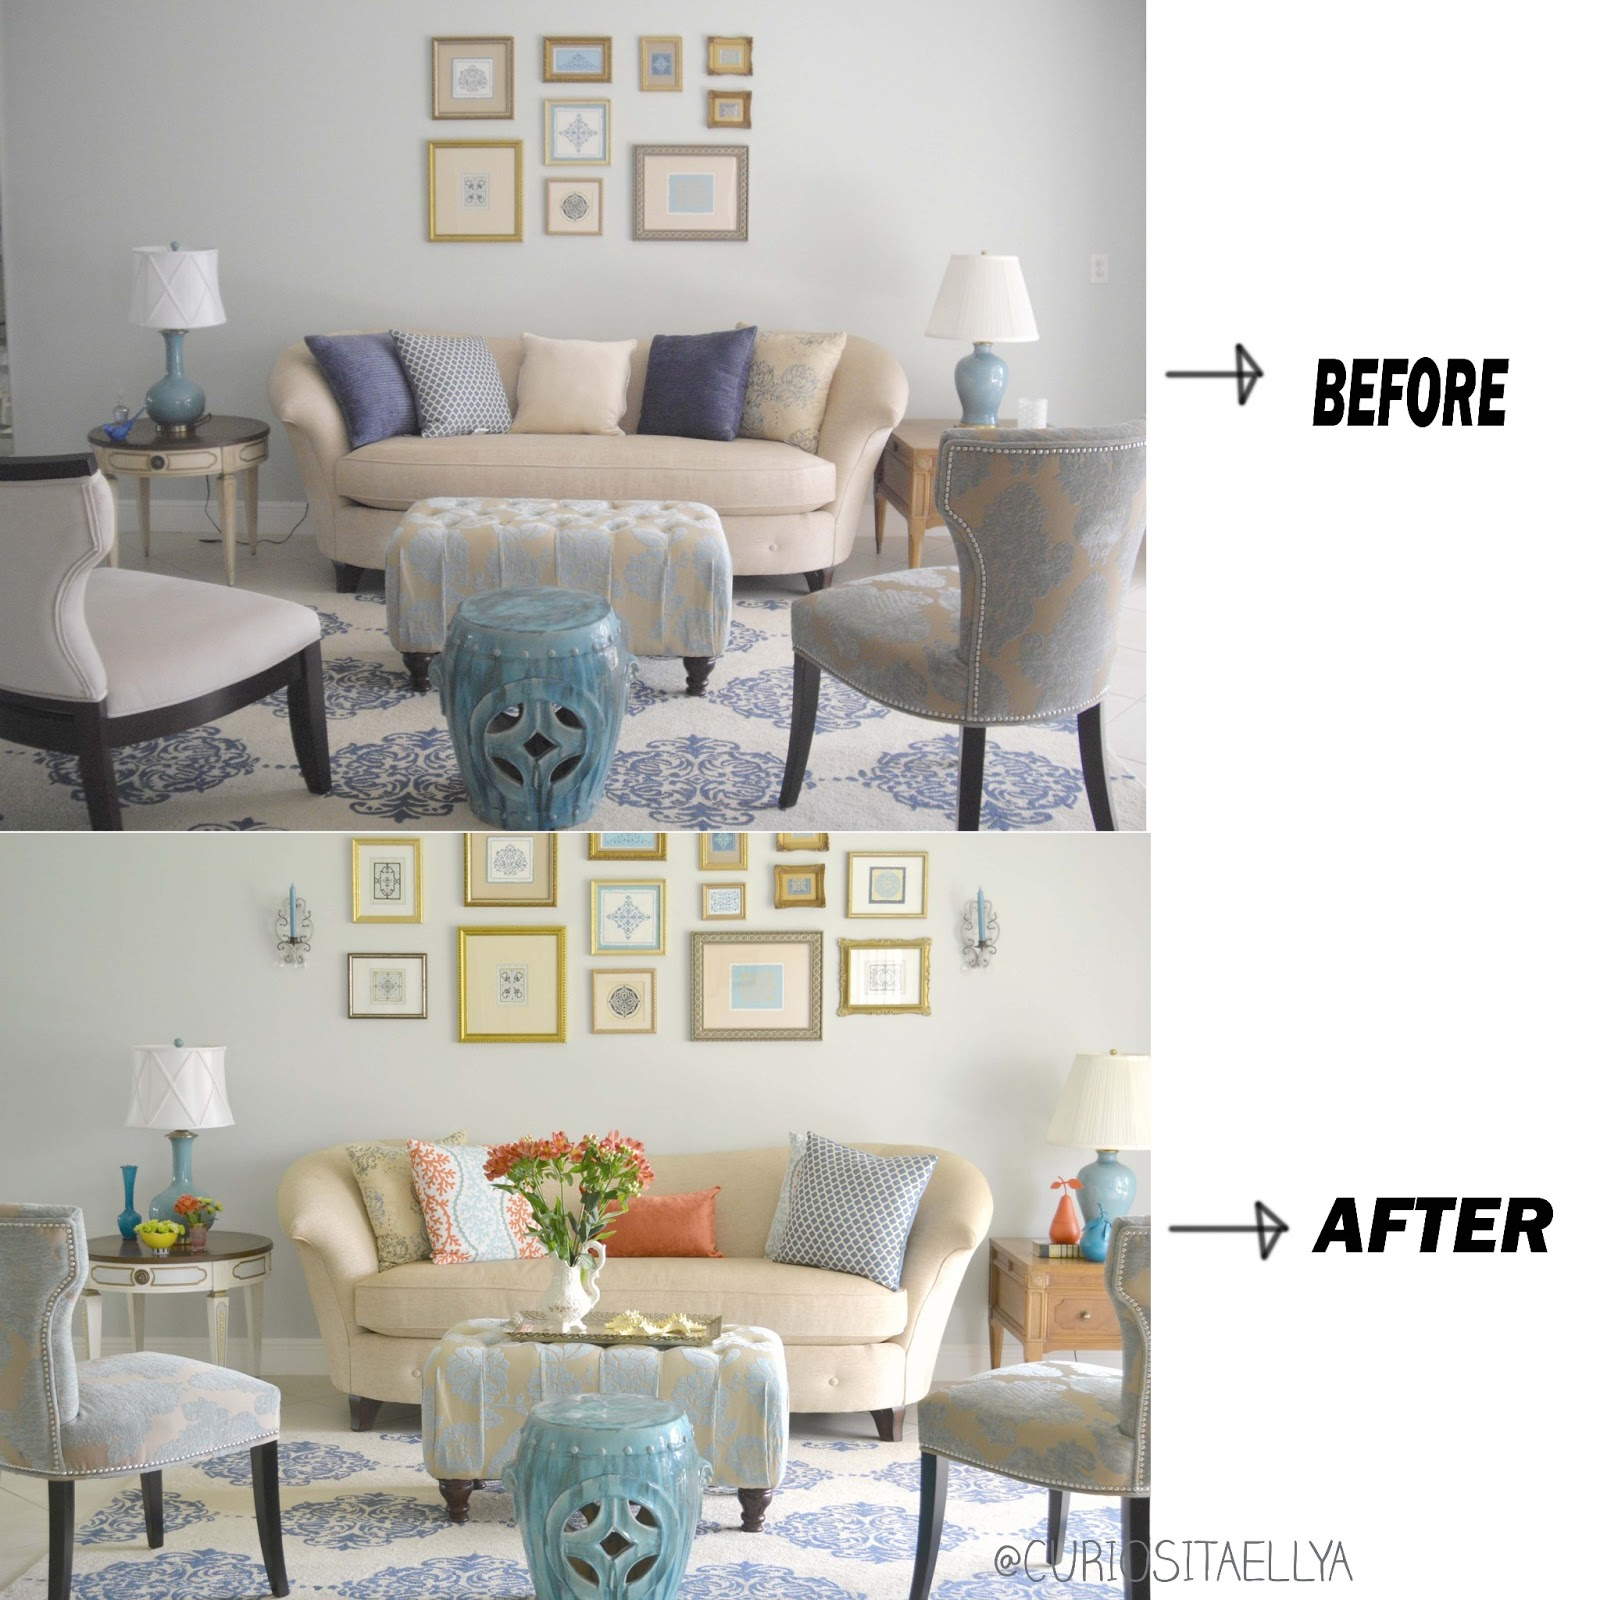 Curiositaellya: Soft Blue and Linen End Table Makeover